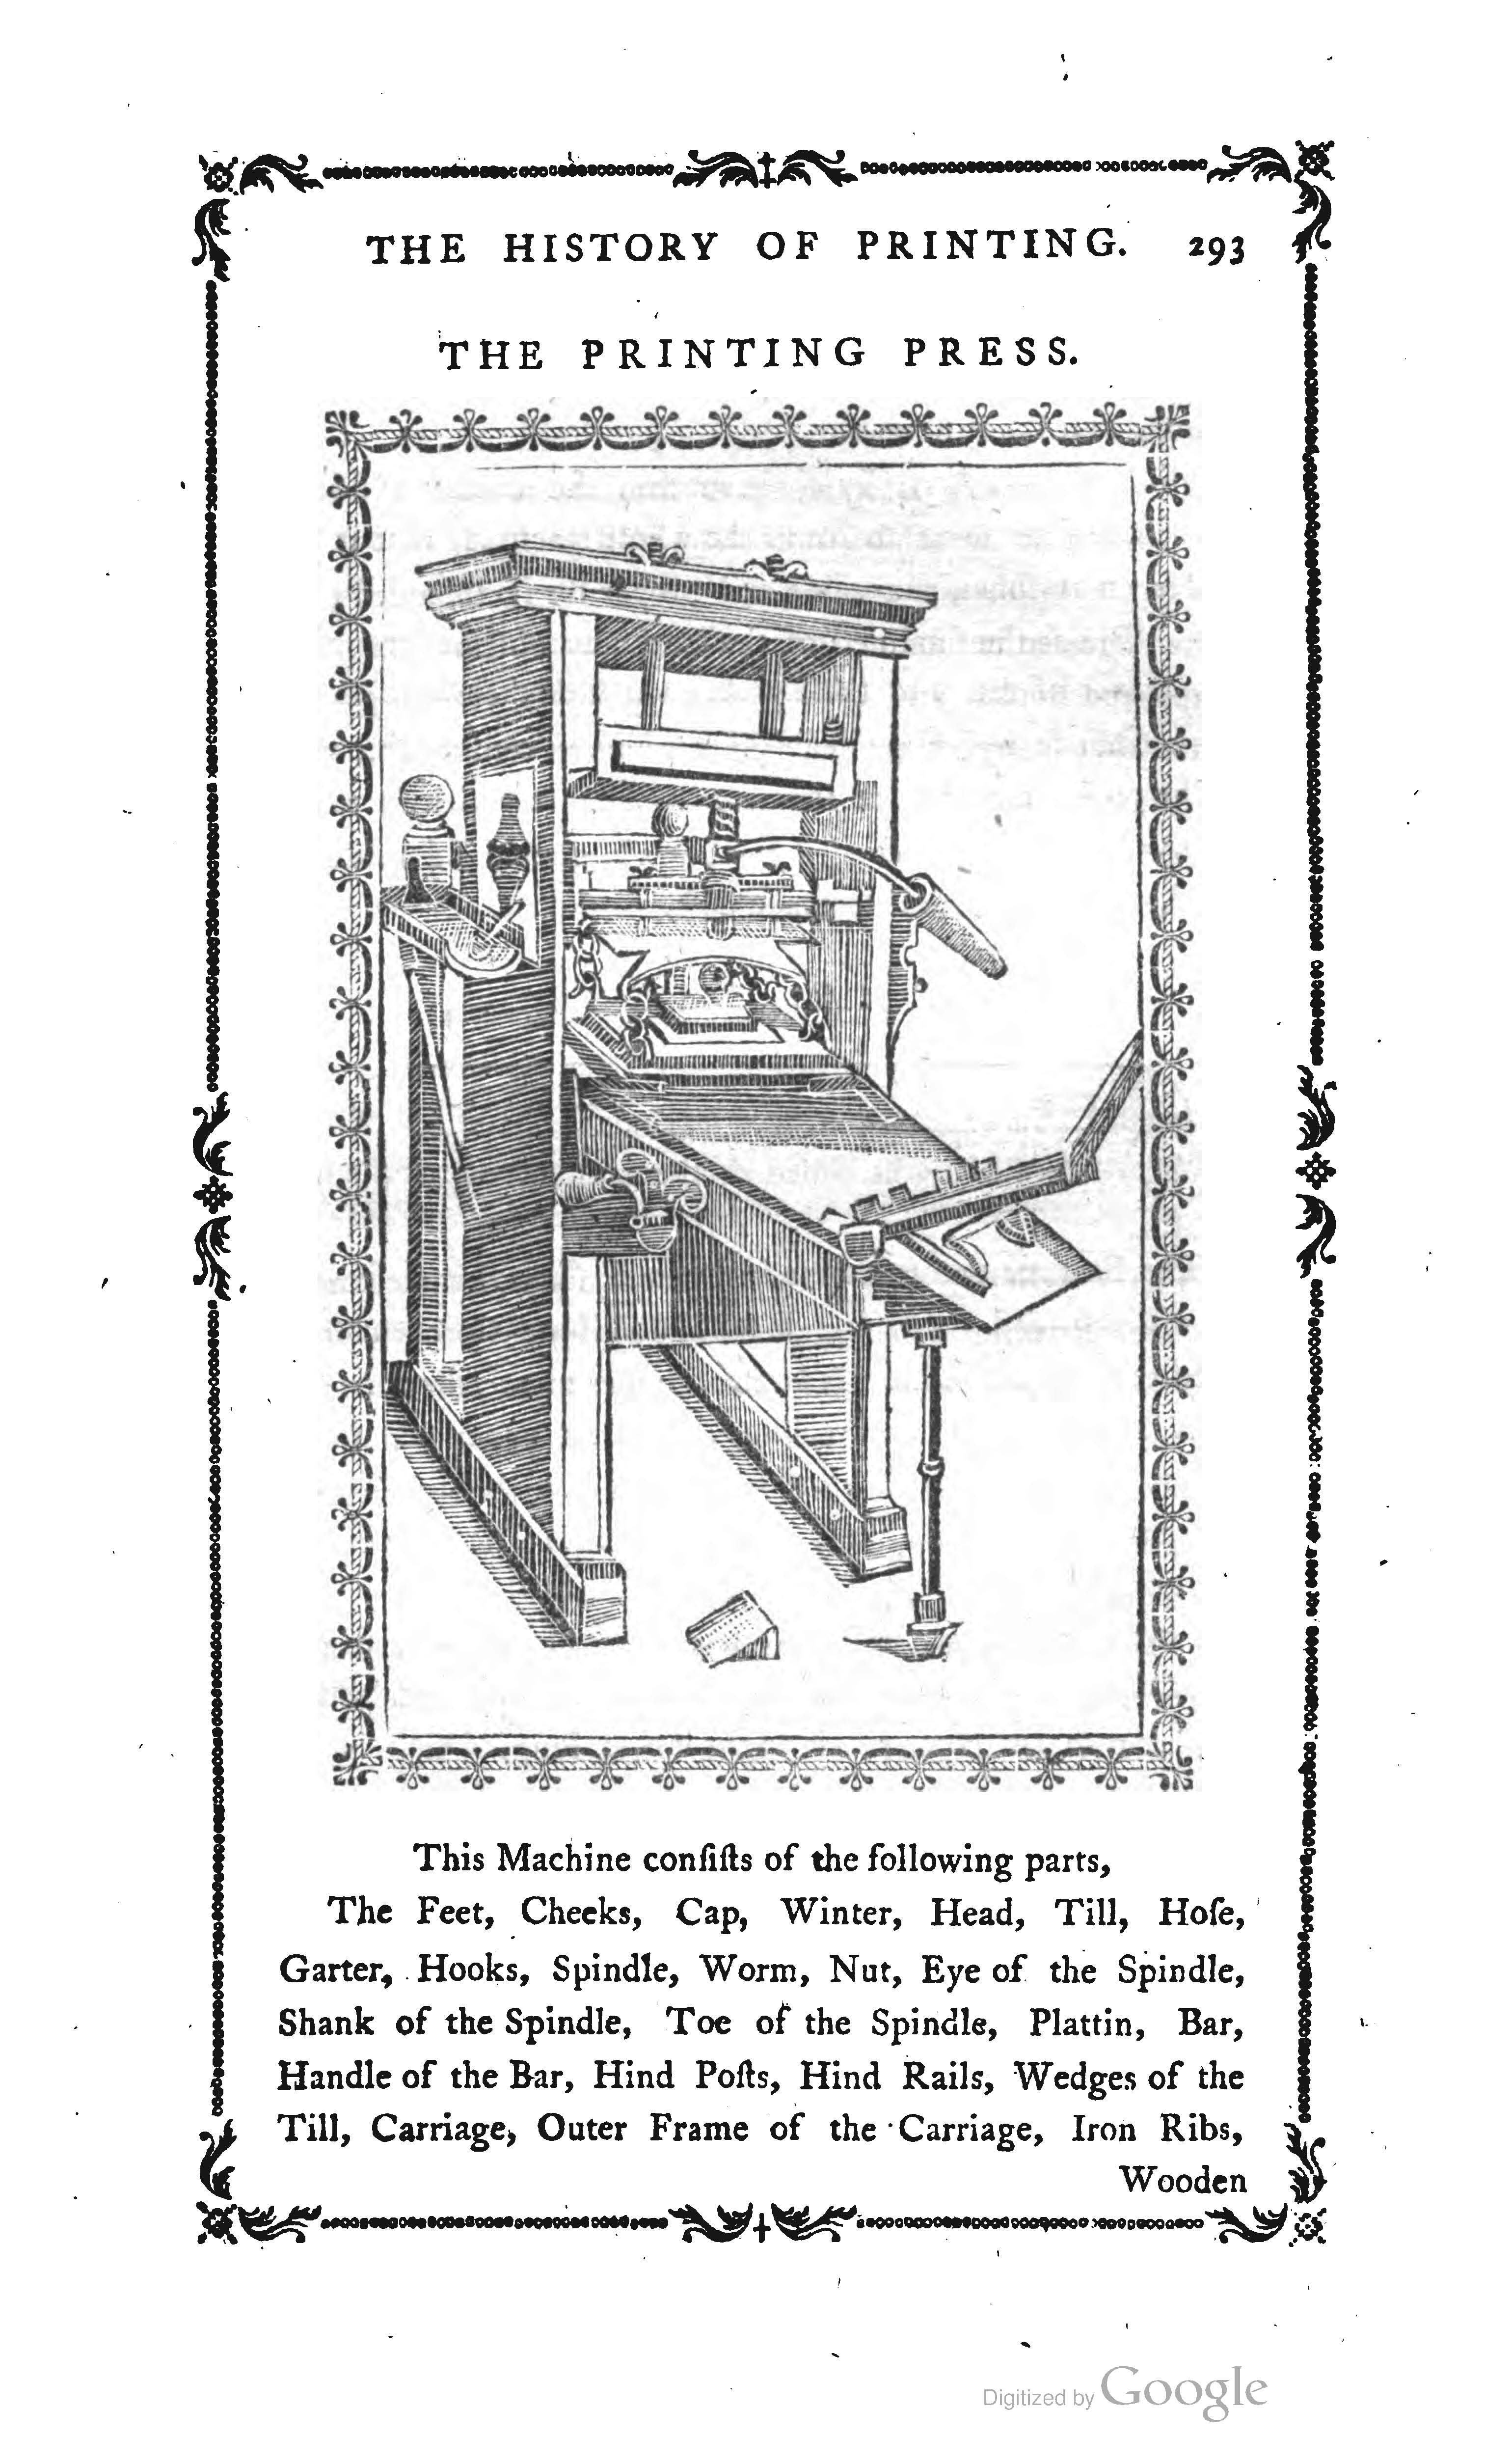 Illustration from The History and Art of Printing by Philip Luckombe (London: J. Johnson, 1771), p. 293.